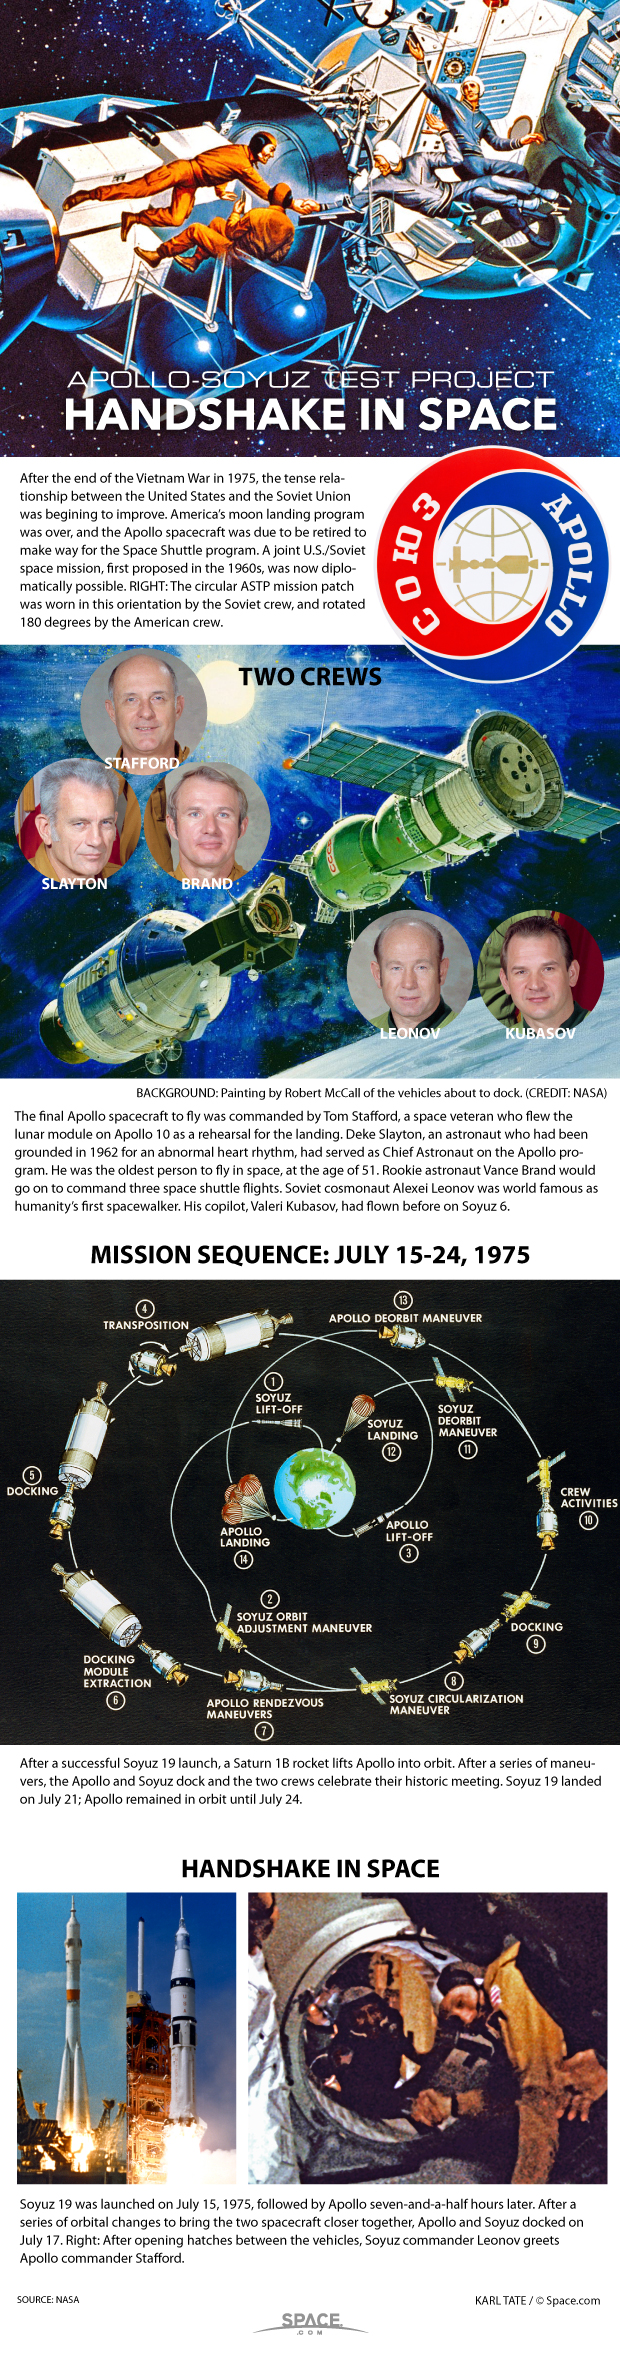 Diagrams explain the 1975 Apollo-Soyuz space mission.